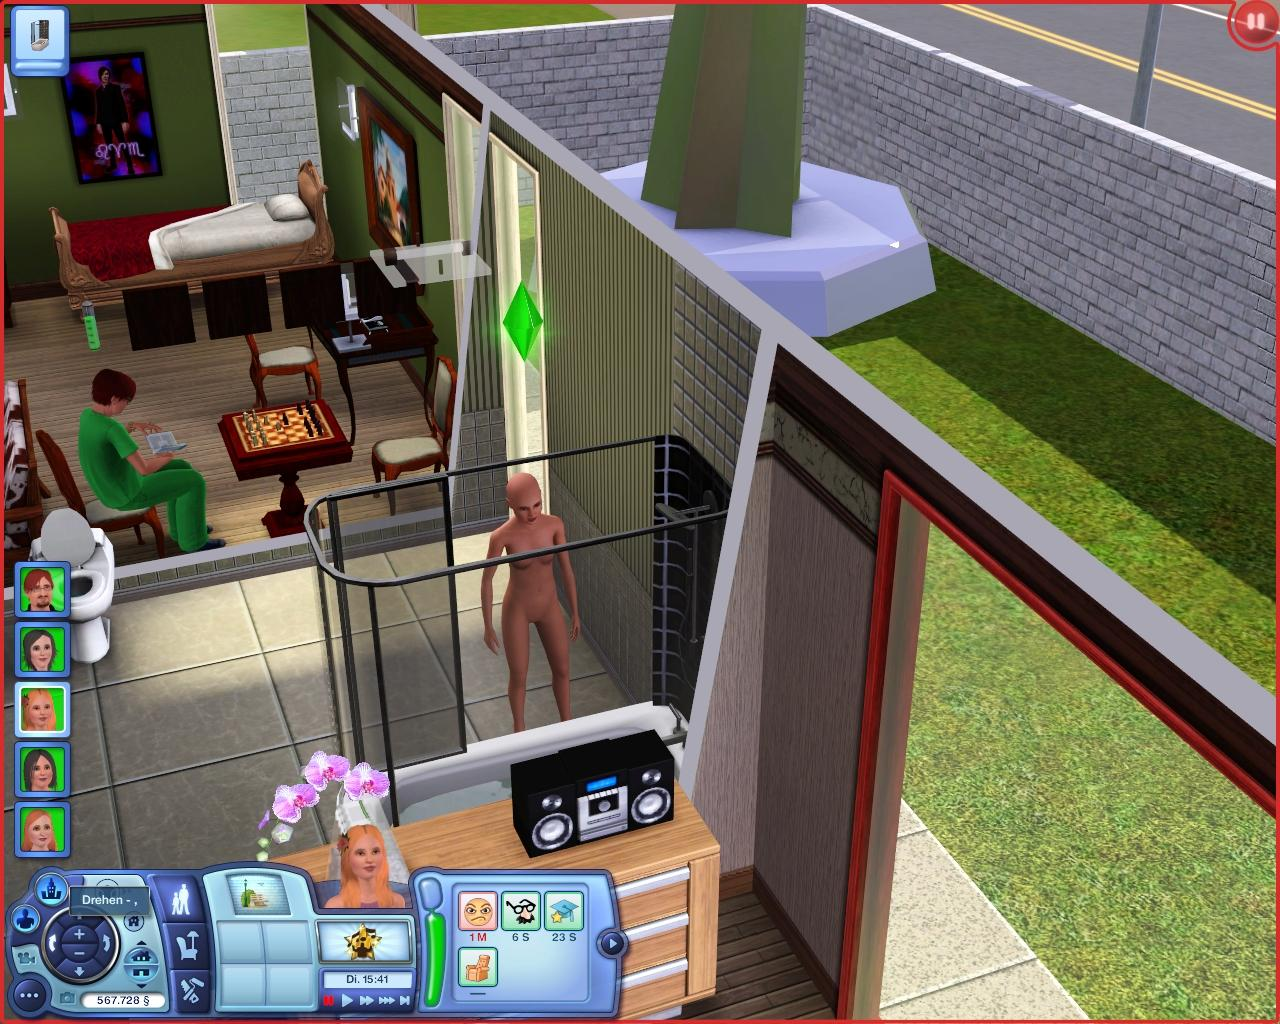 Sims 2 naked sims cheat sexy videos